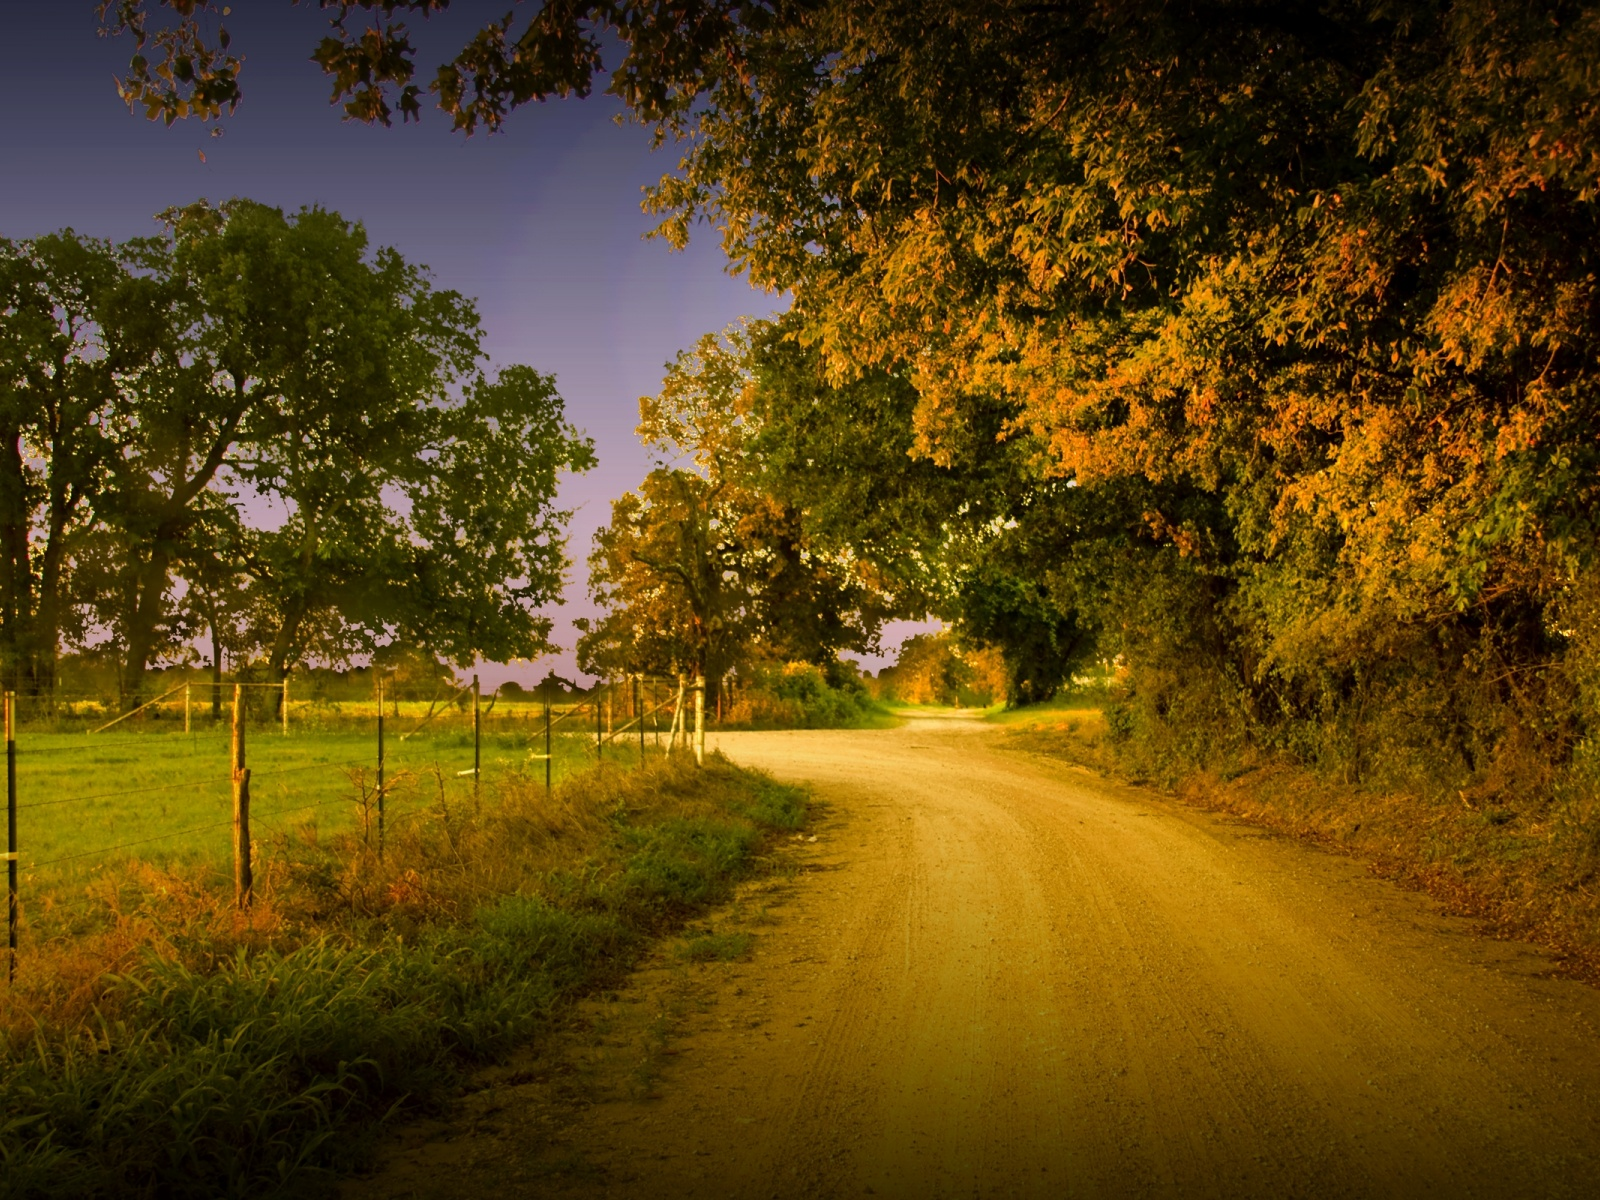 Cute Wallpaper With Quotes Download 1500x500 Dusty Country Road Twitter Header Photo